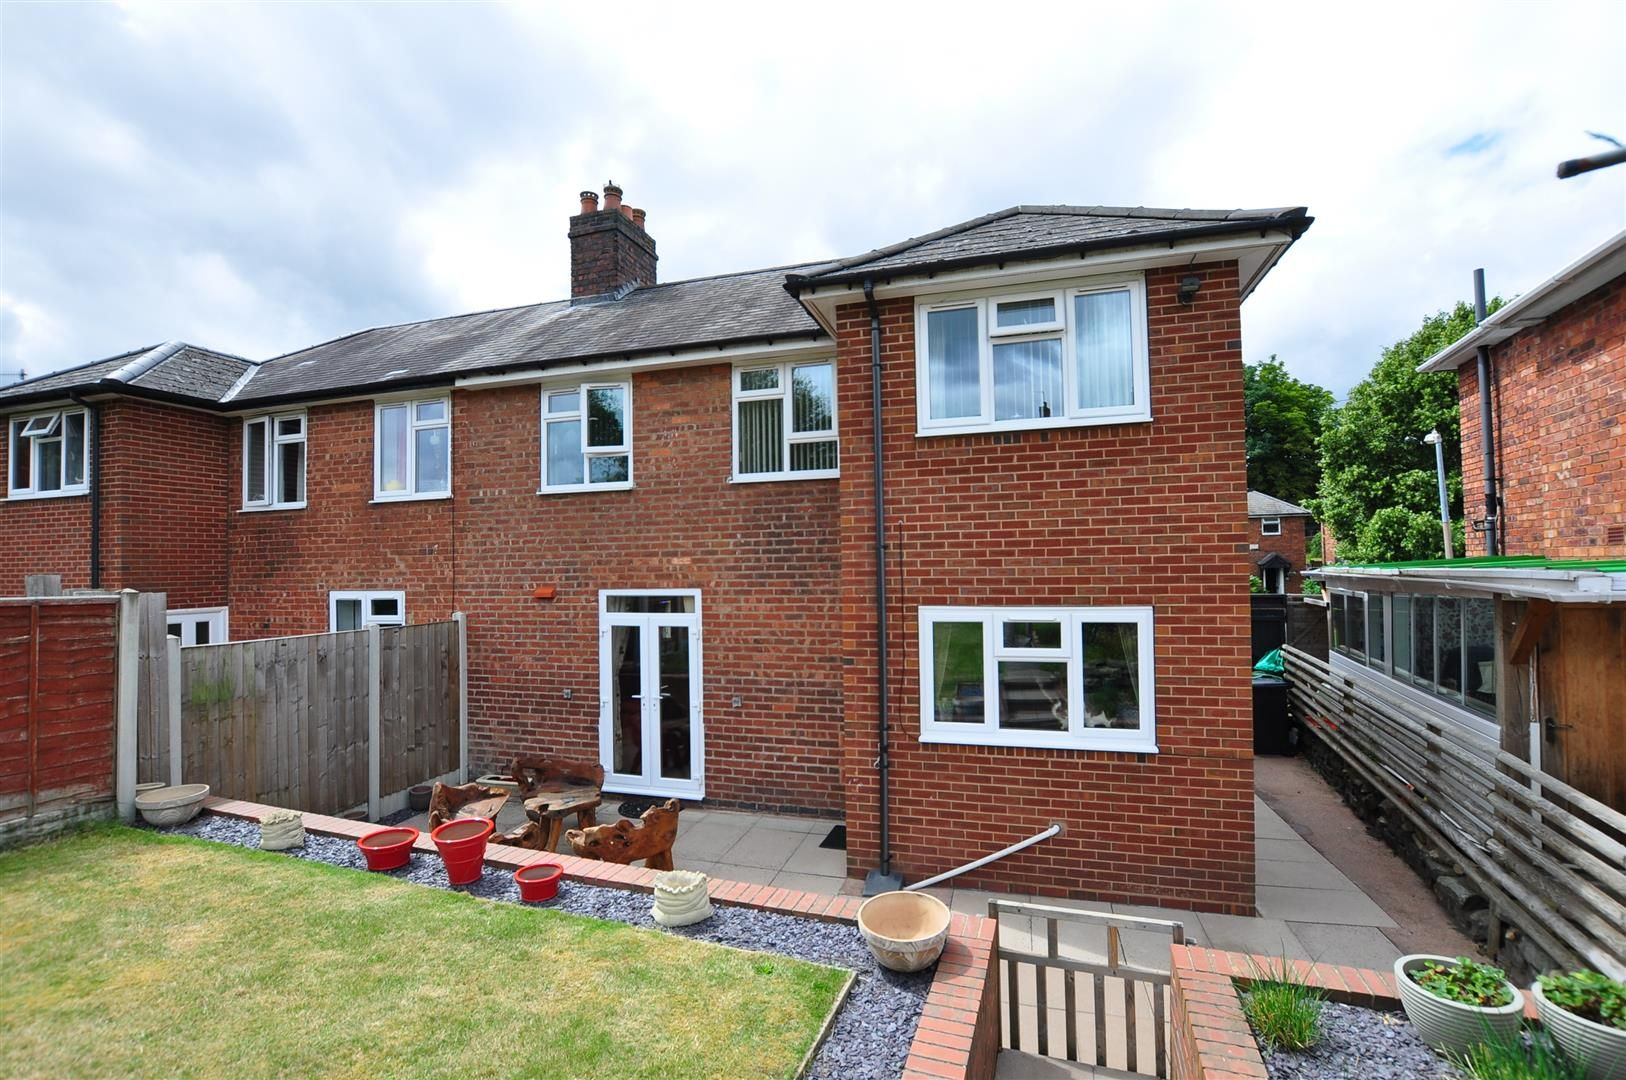 3 bed semi-detached for sale in Lower Gornal  - Property Image 20